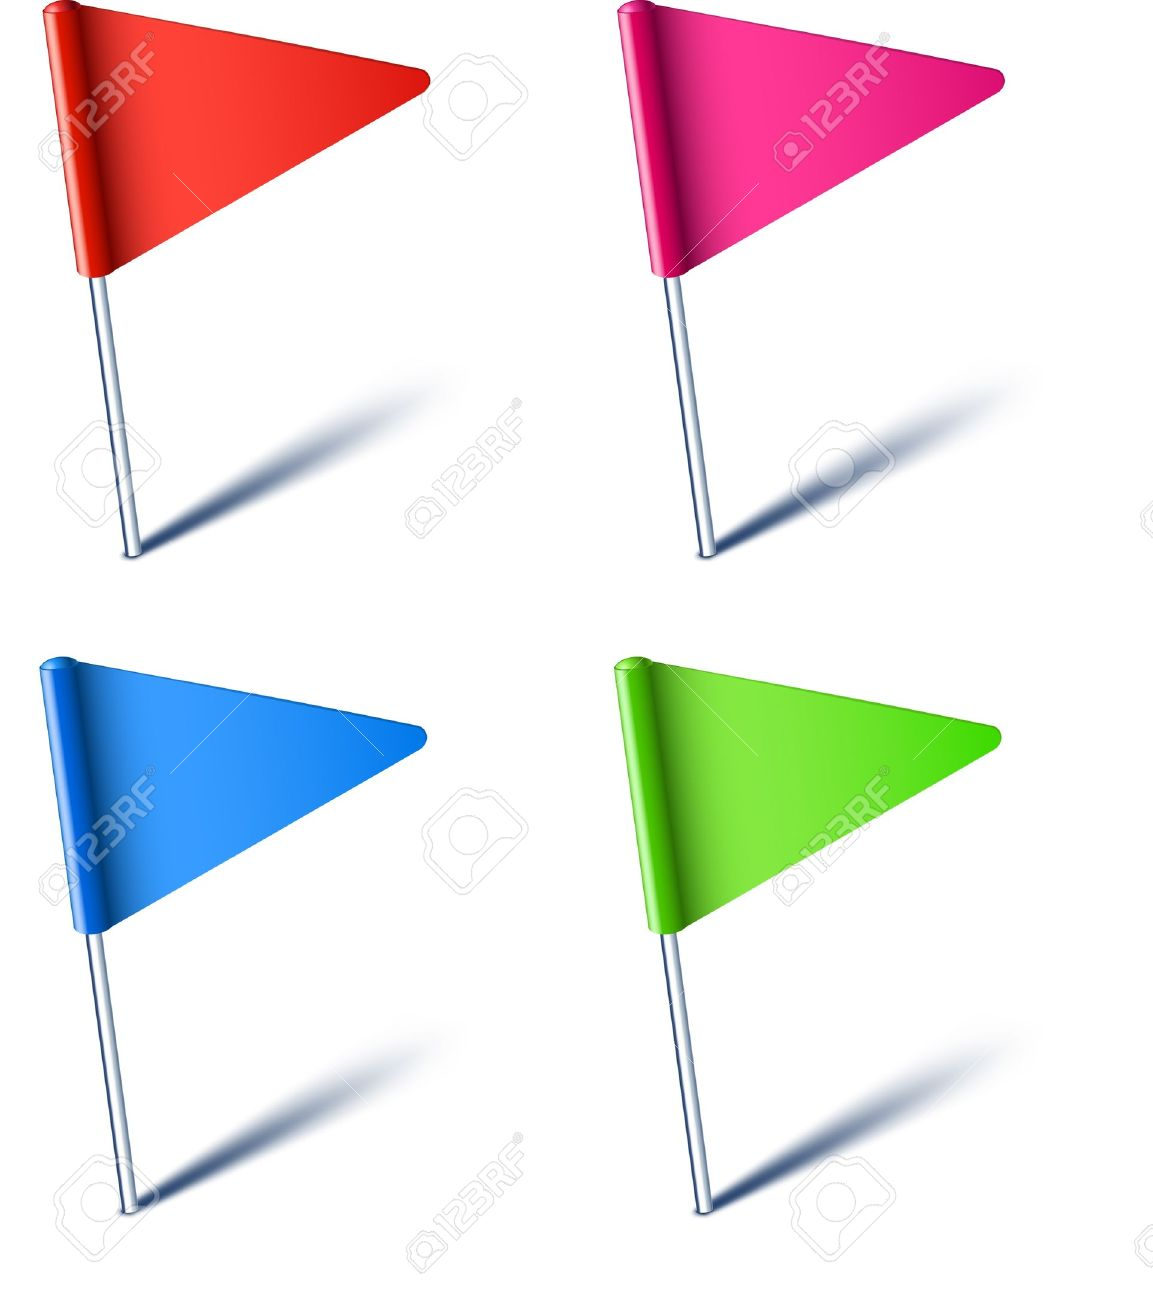 Vector illustration of color pin flags. - 10457935